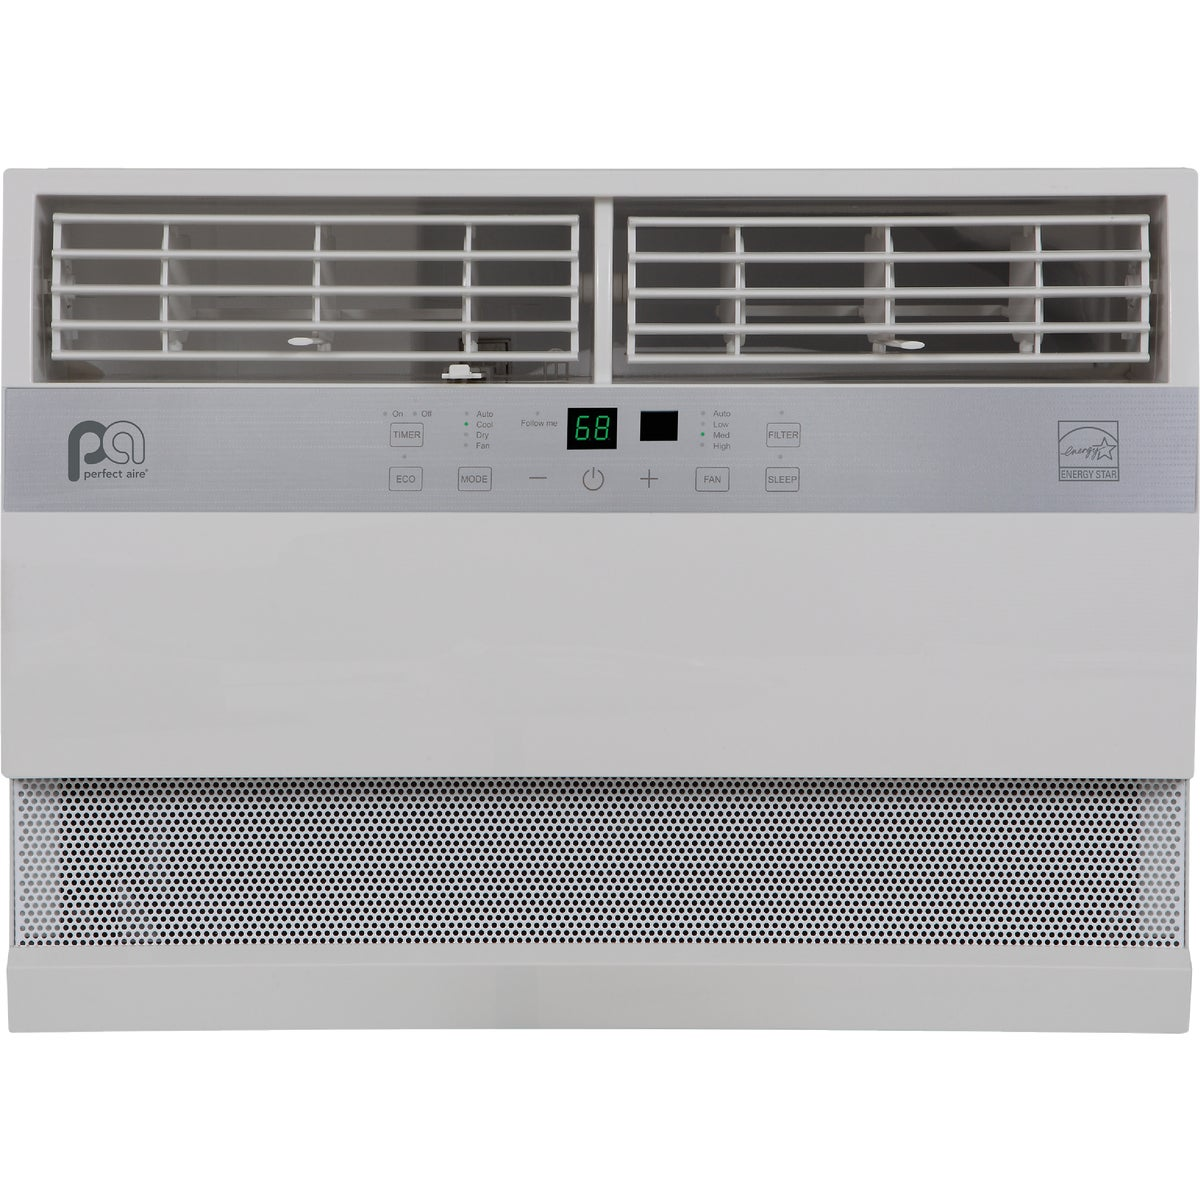 12000BTU AIR CONDITIONER - 2PAC12000 by Perfect Aire Import